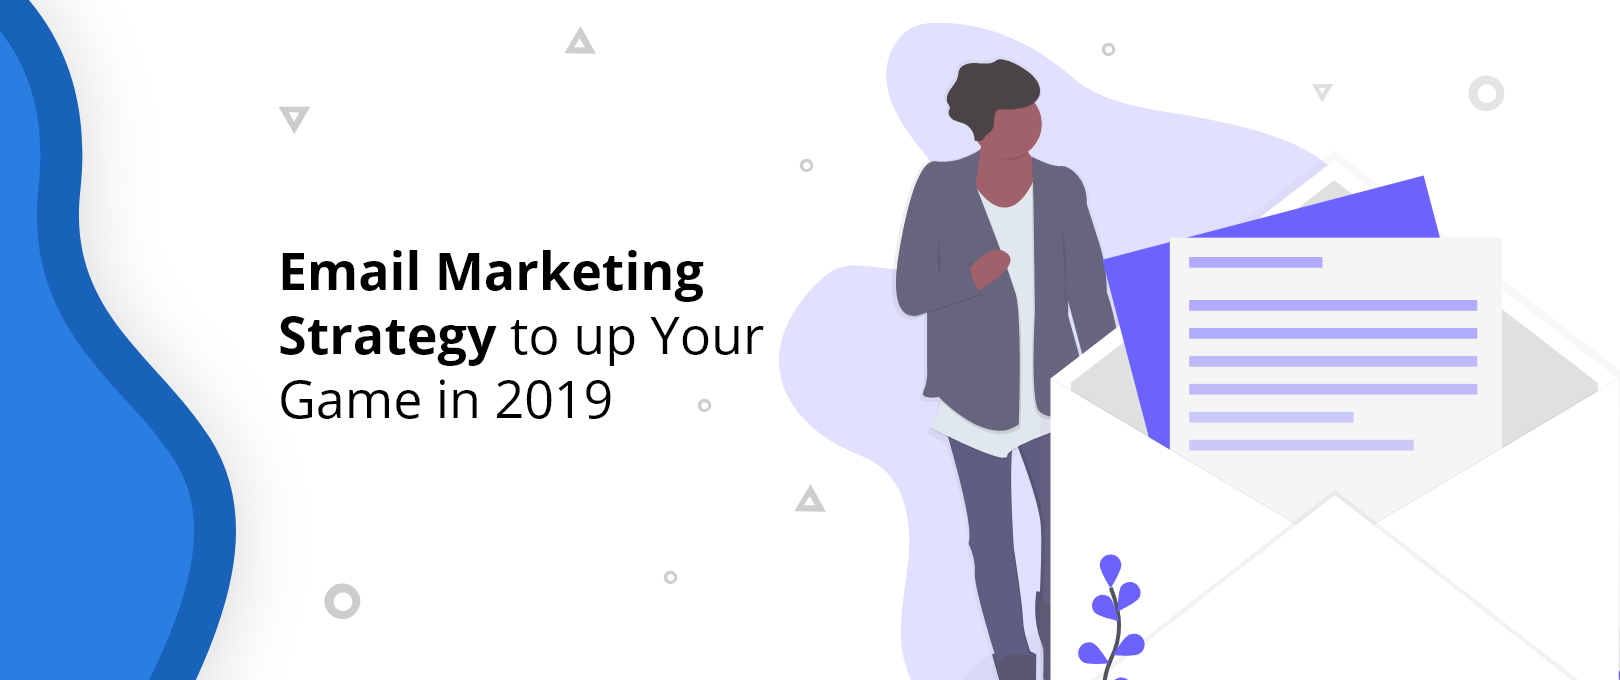 Email Marketing Strategy 2019